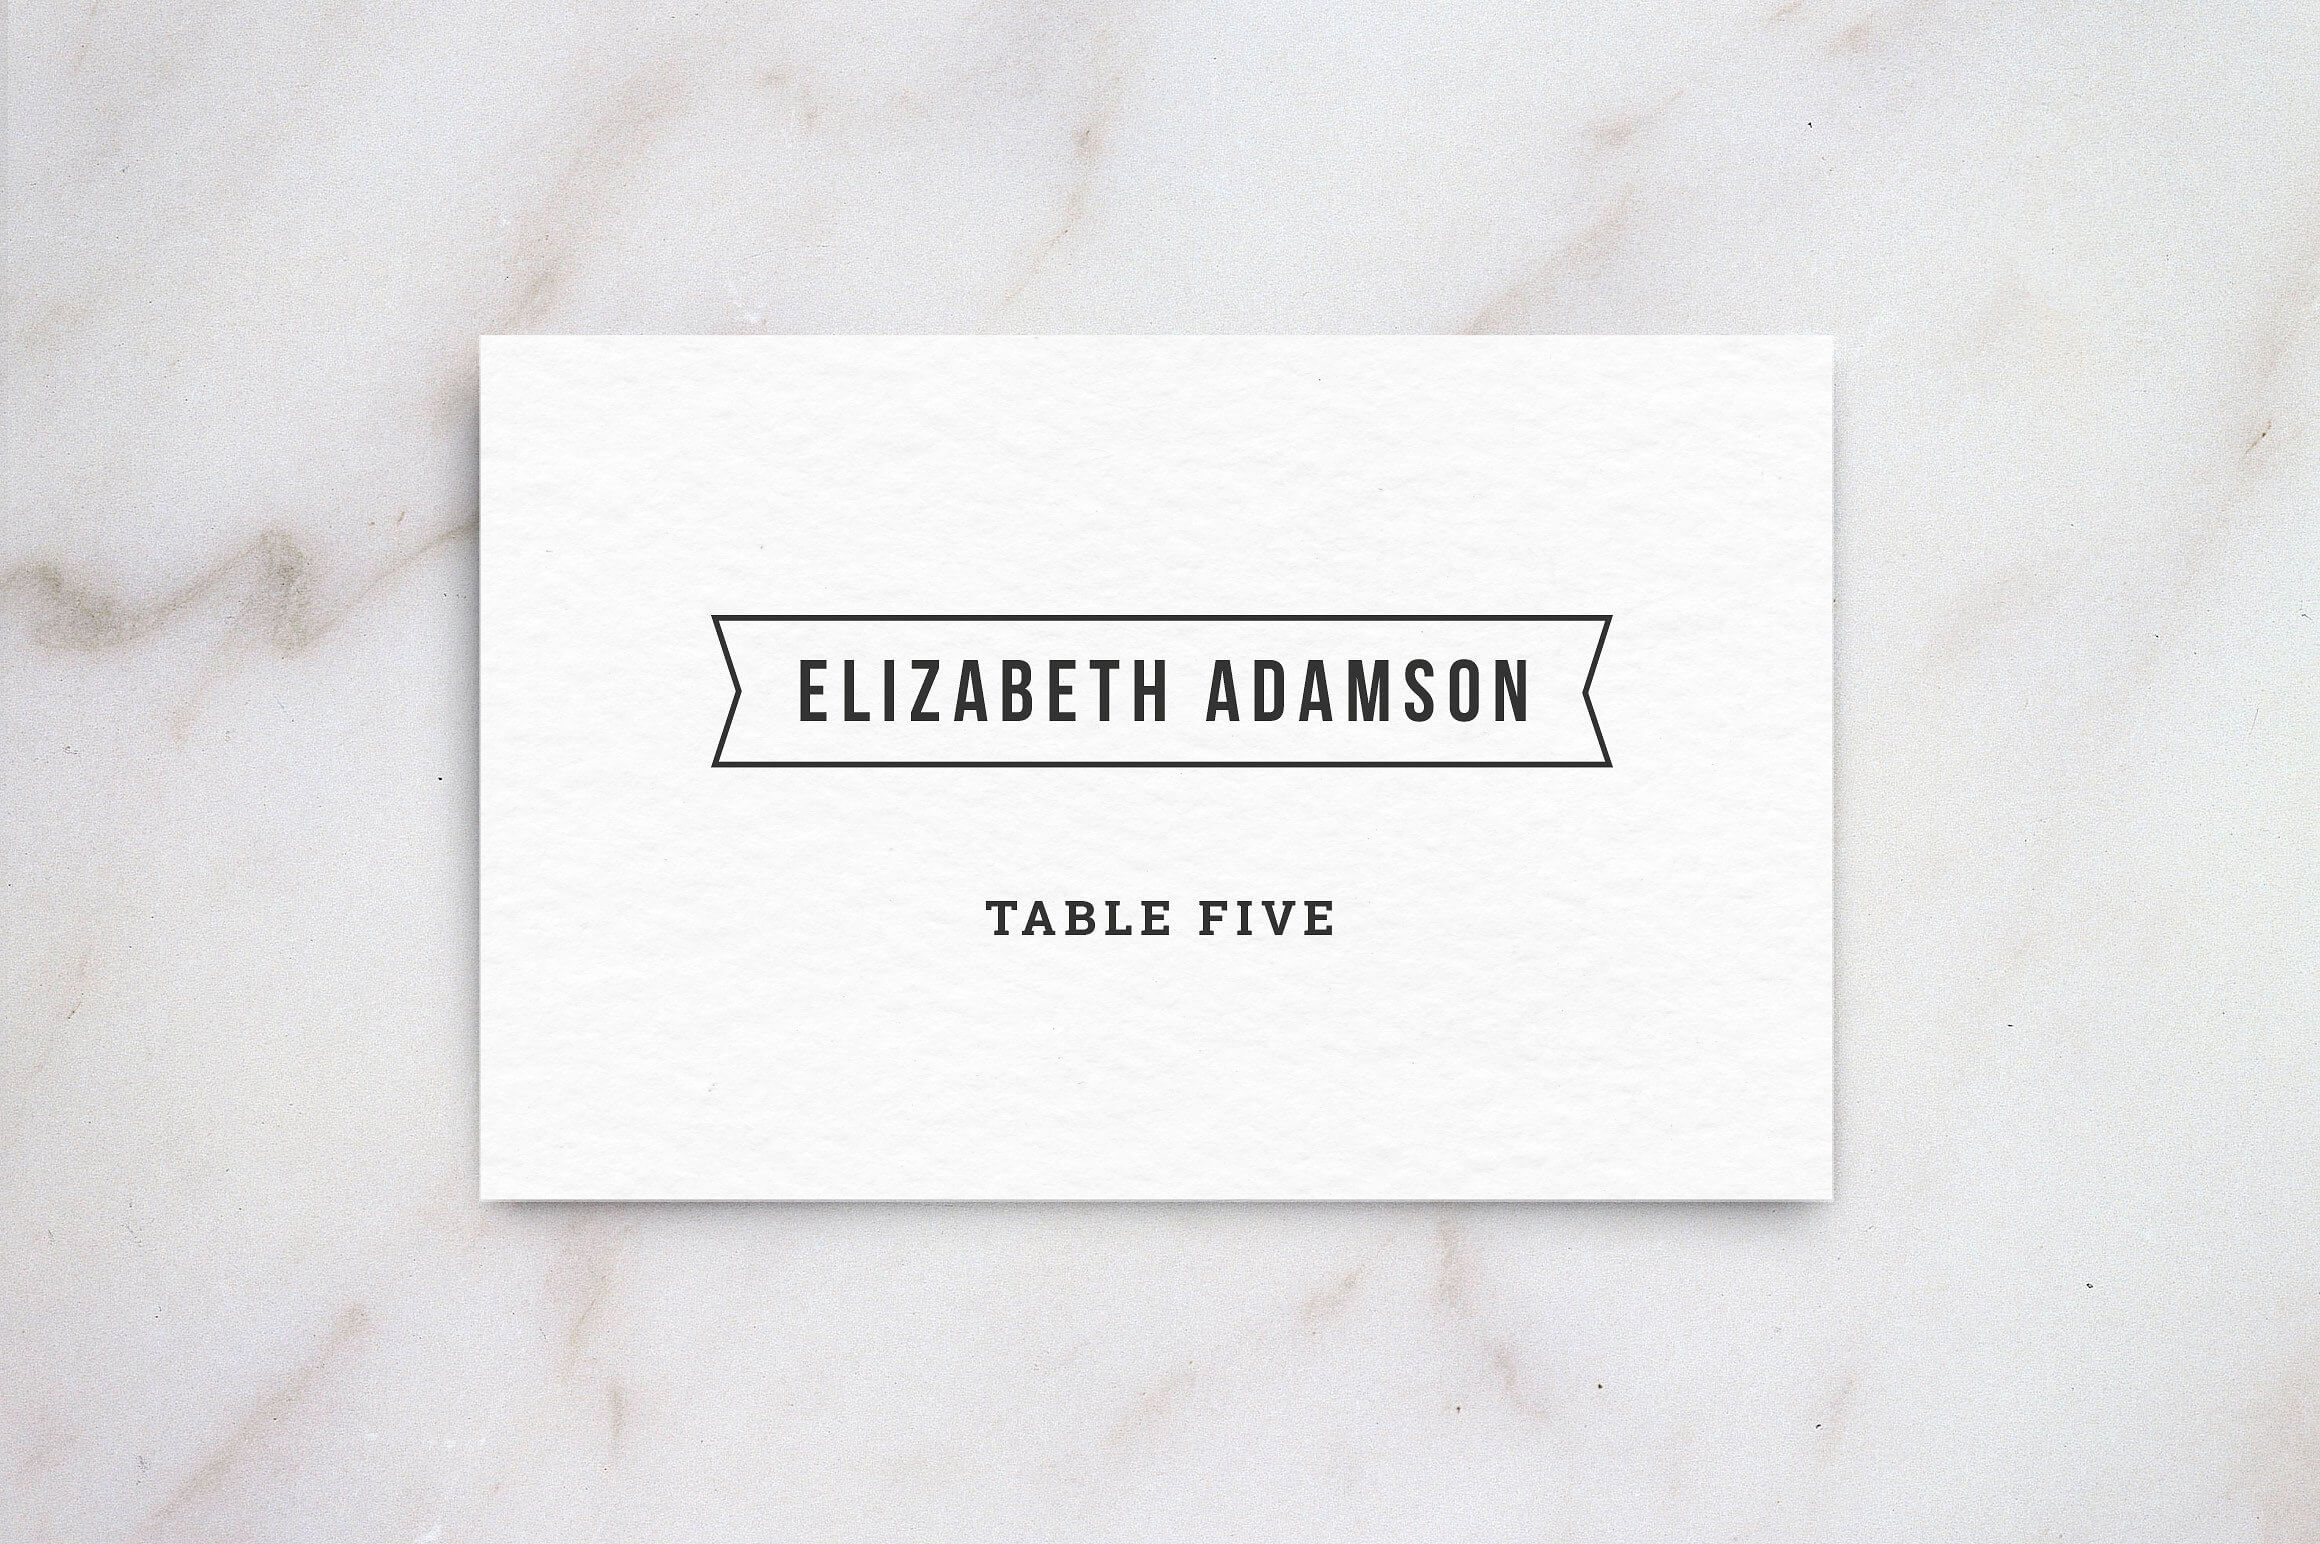 005 Melanie Placecards Inside Free Place Card Templates 6 For Place Card Template Free 6 Per Page